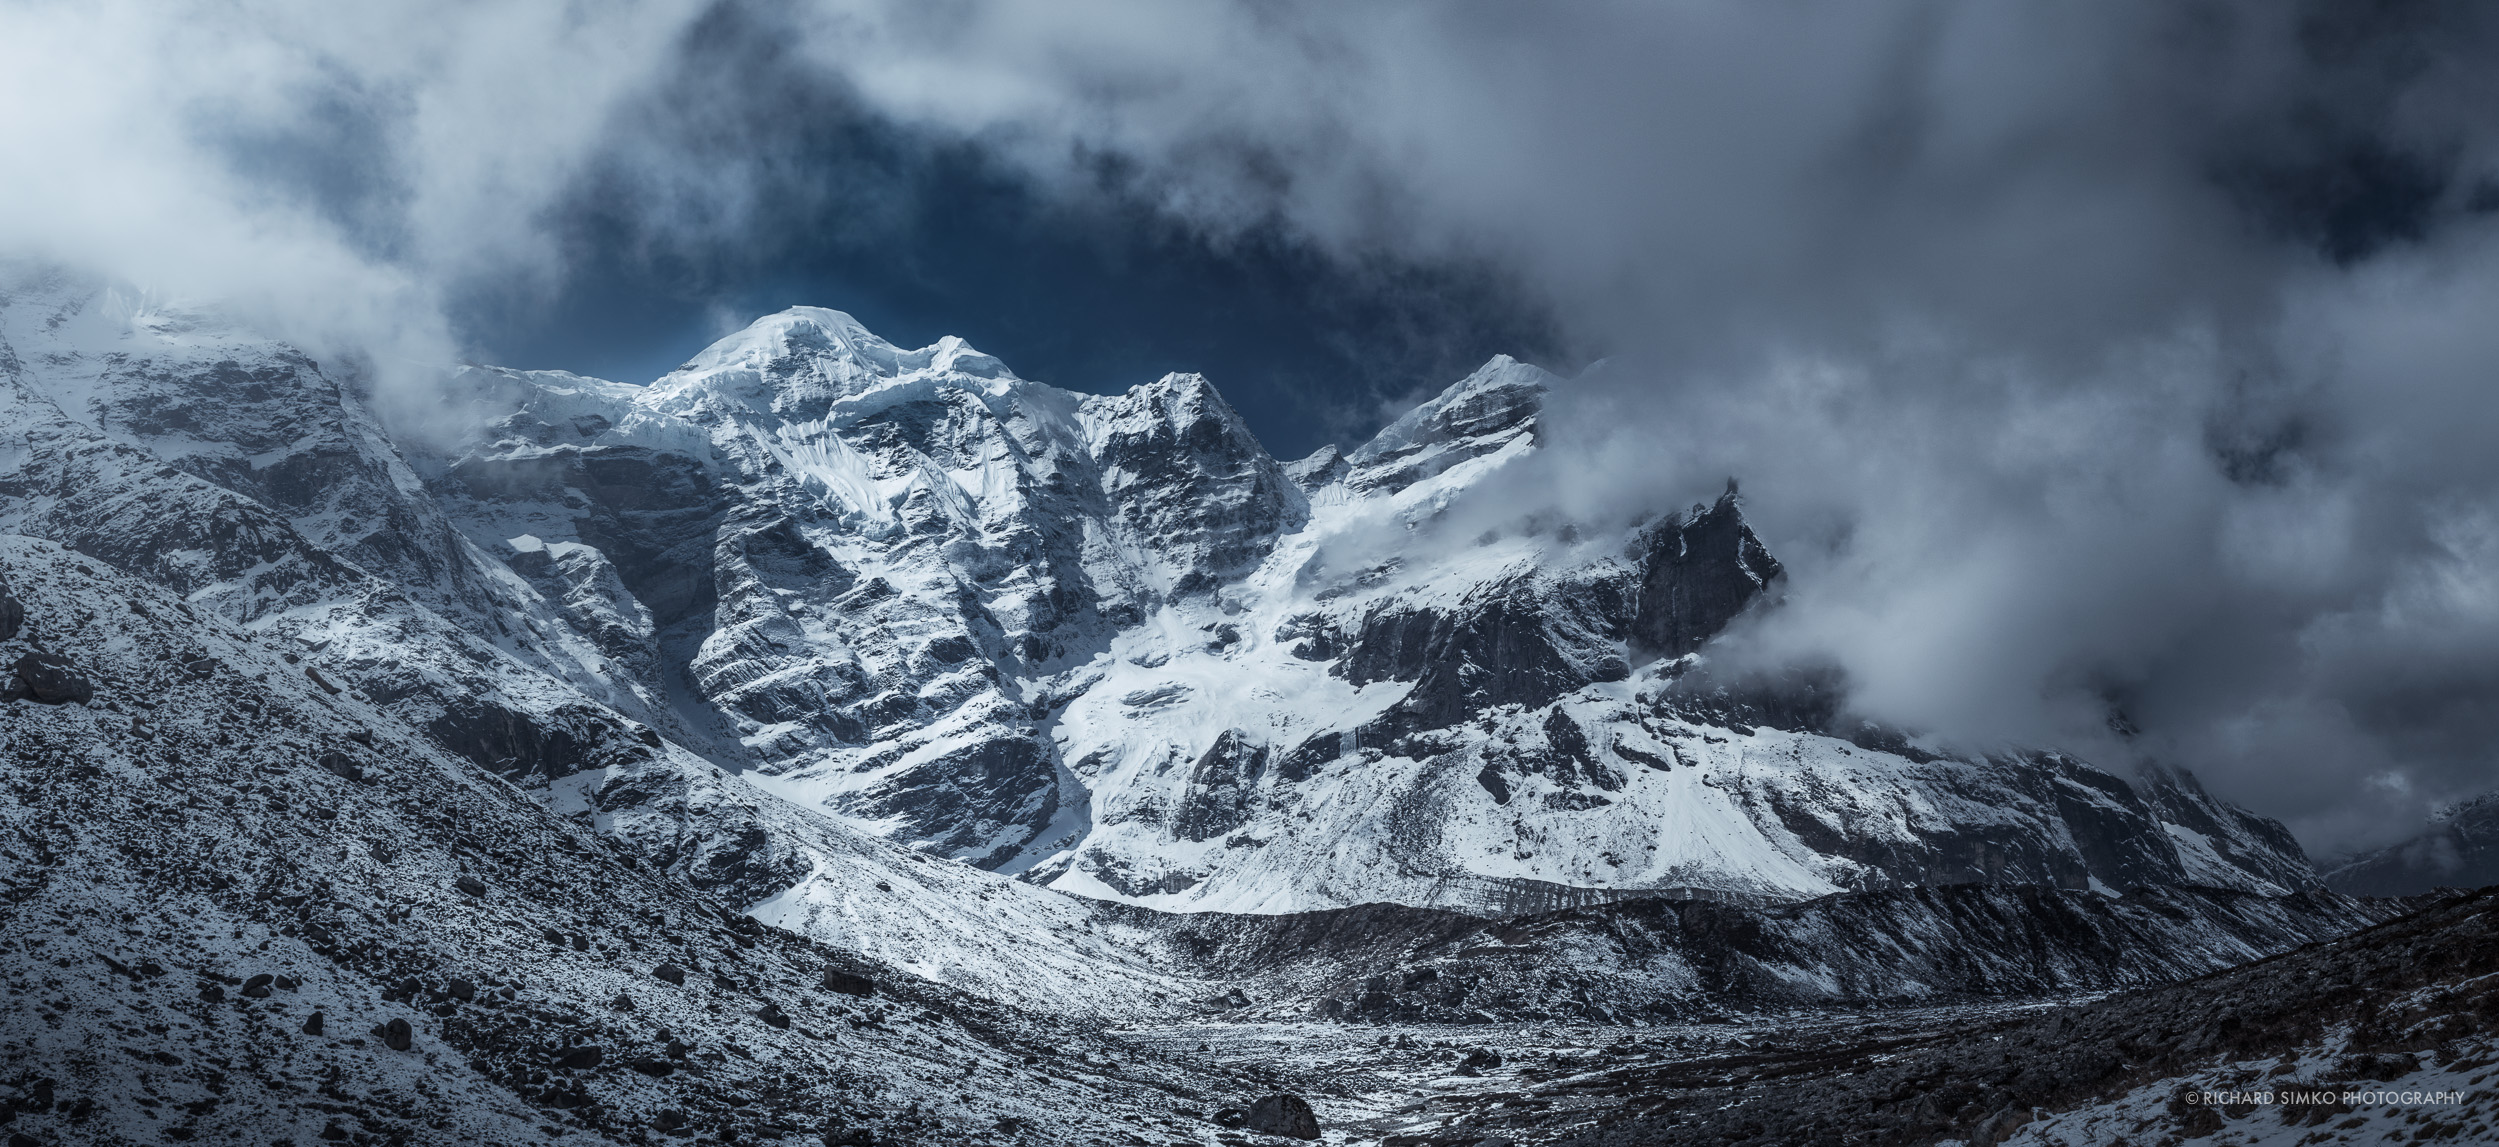 Mera Peak. Monsoon season is knocking on the door and clouds are rolling in after brief clear skies in the morning.